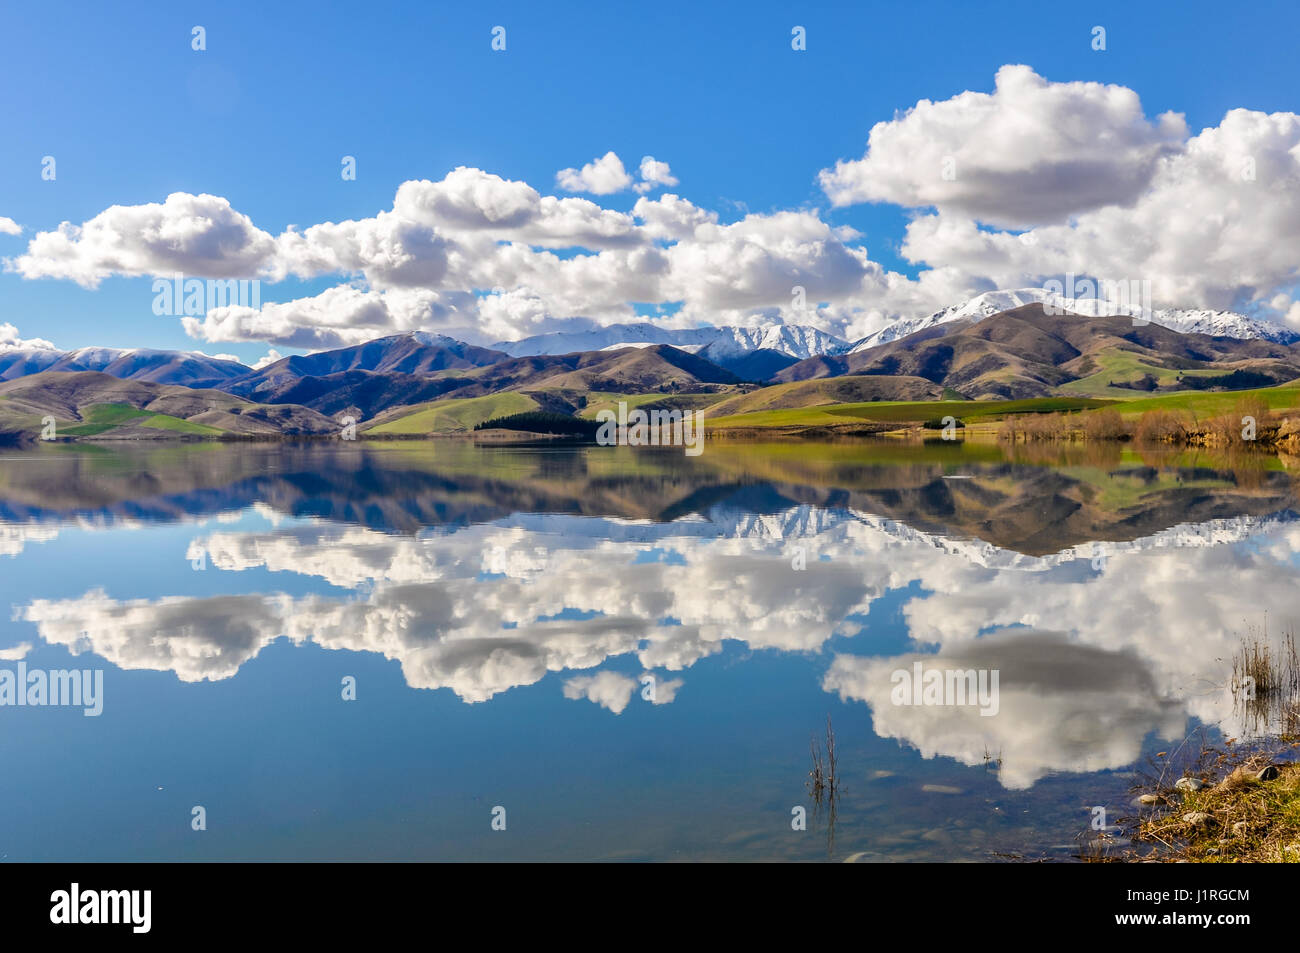 Reflection of the snowy mountains in a lake near Fairlie in the Southern Island, New Zealand - Stock Image